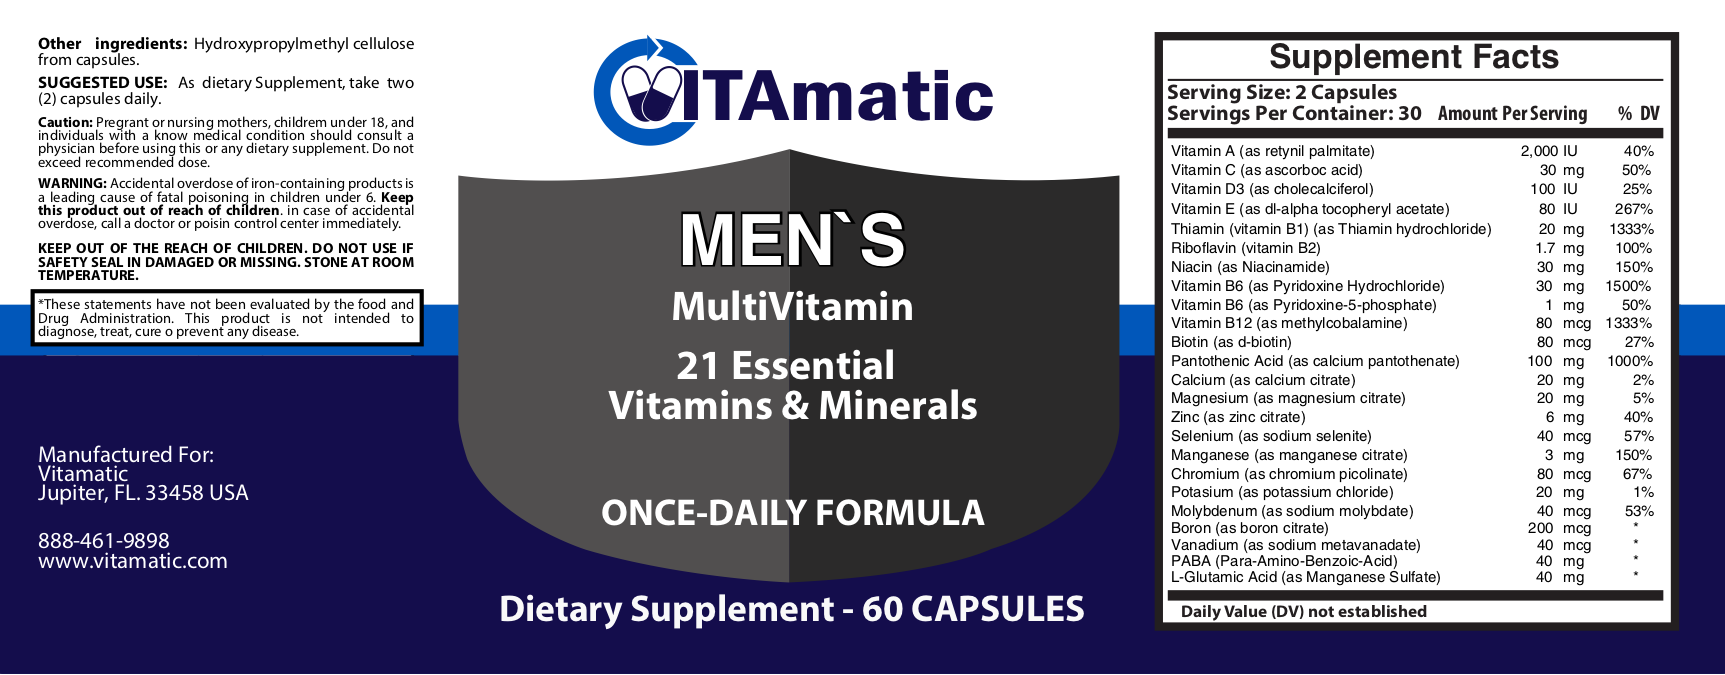 vitamatic mens multivitamin label